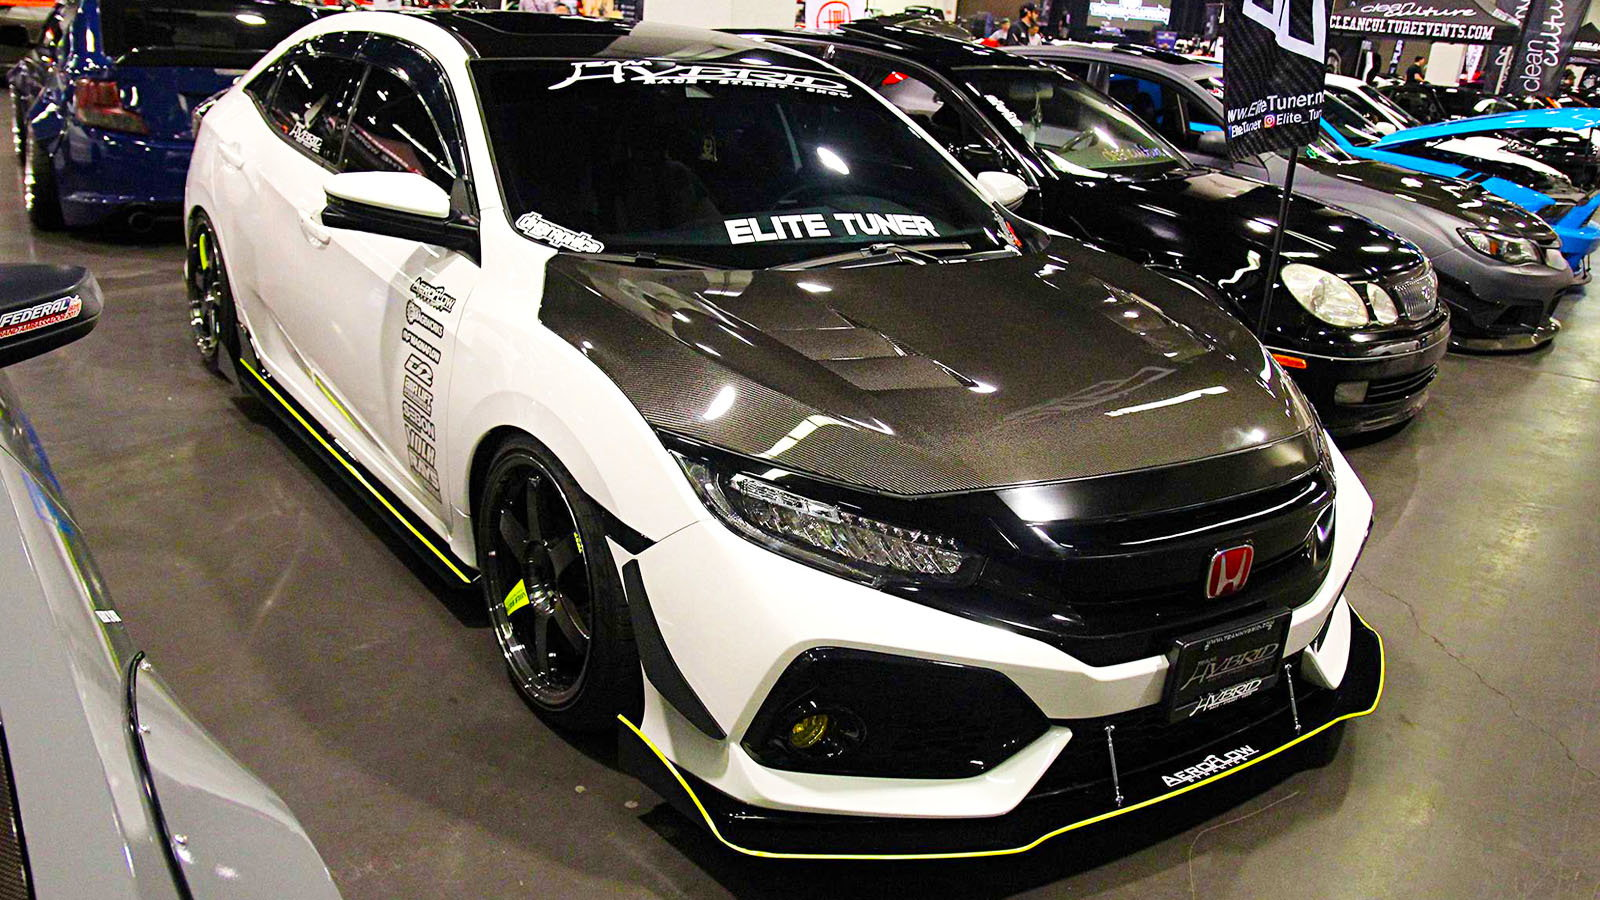 The Hondas of 2018 Tuner Evo SoCal